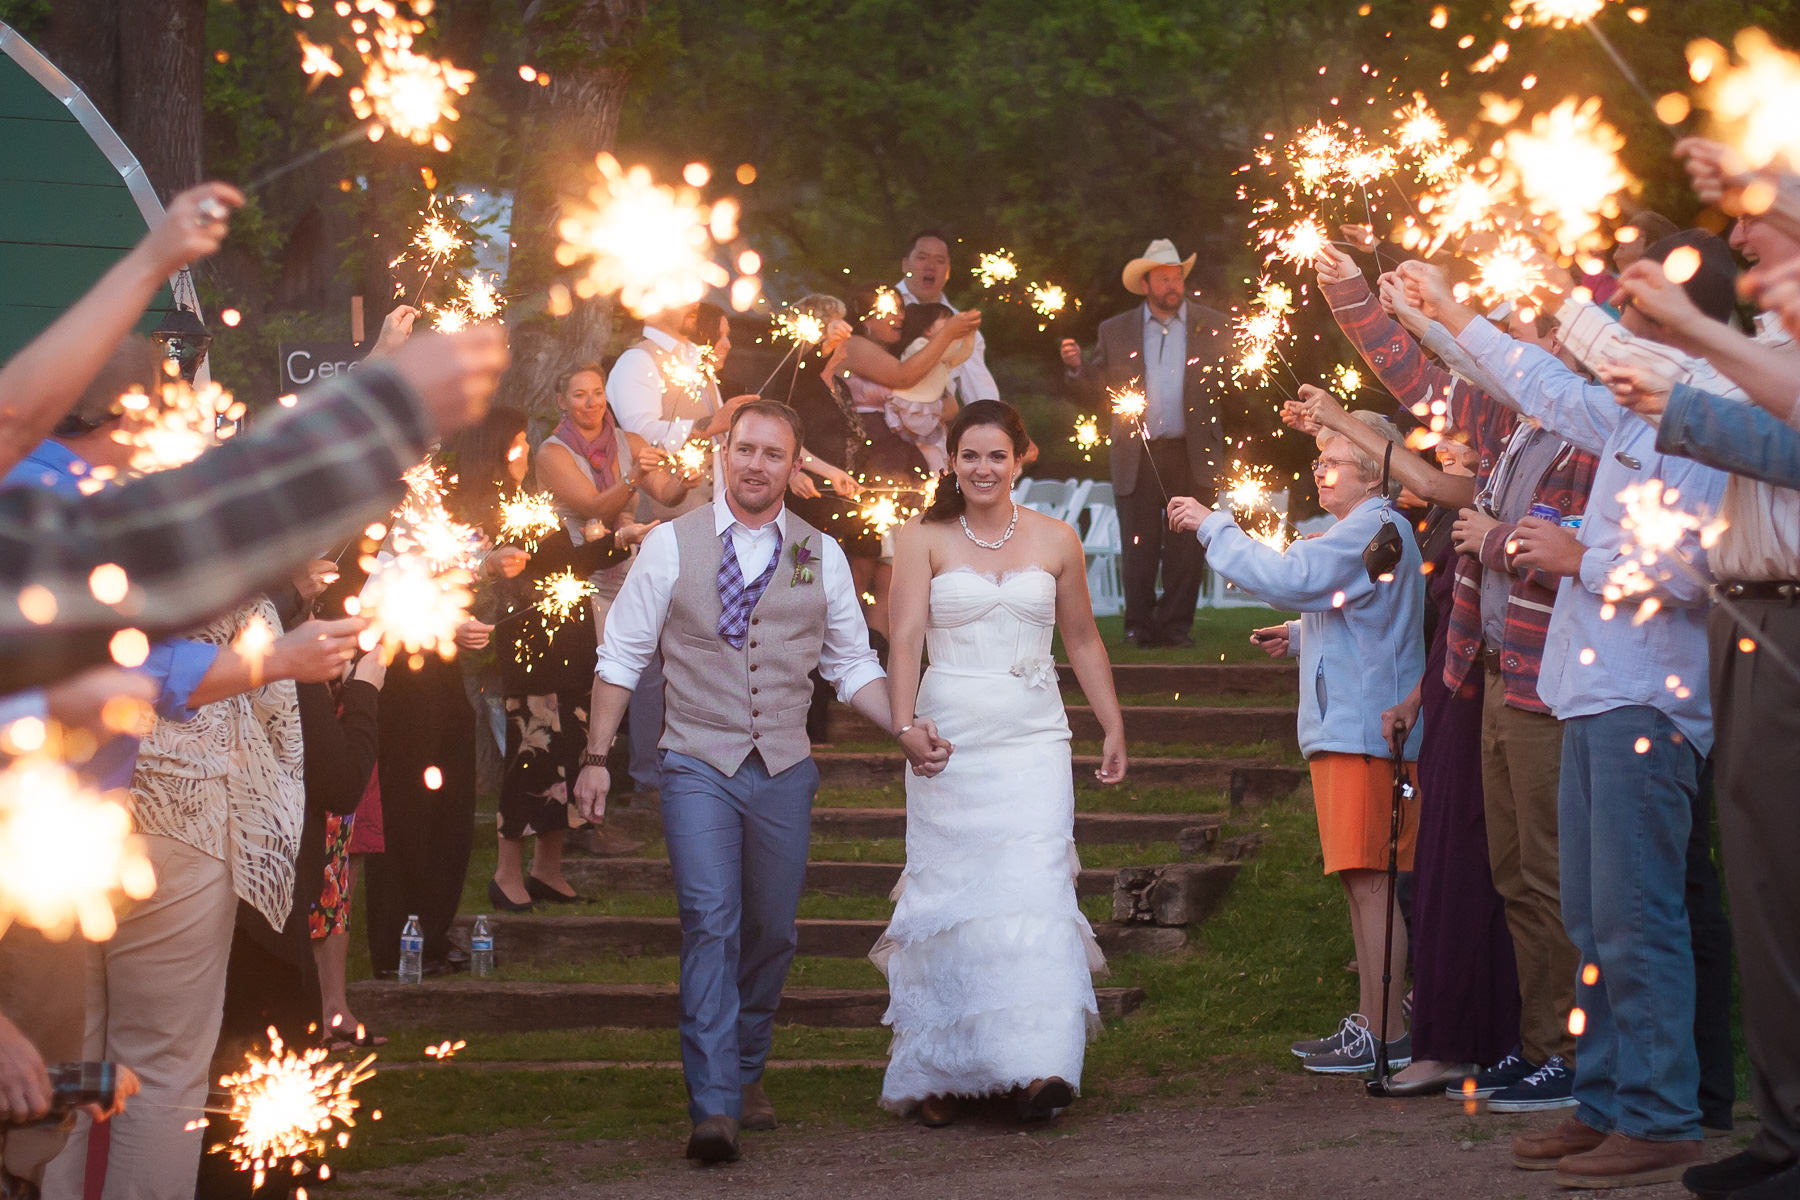 Bride and groom hold hands and walk down an aisle of sparklers.